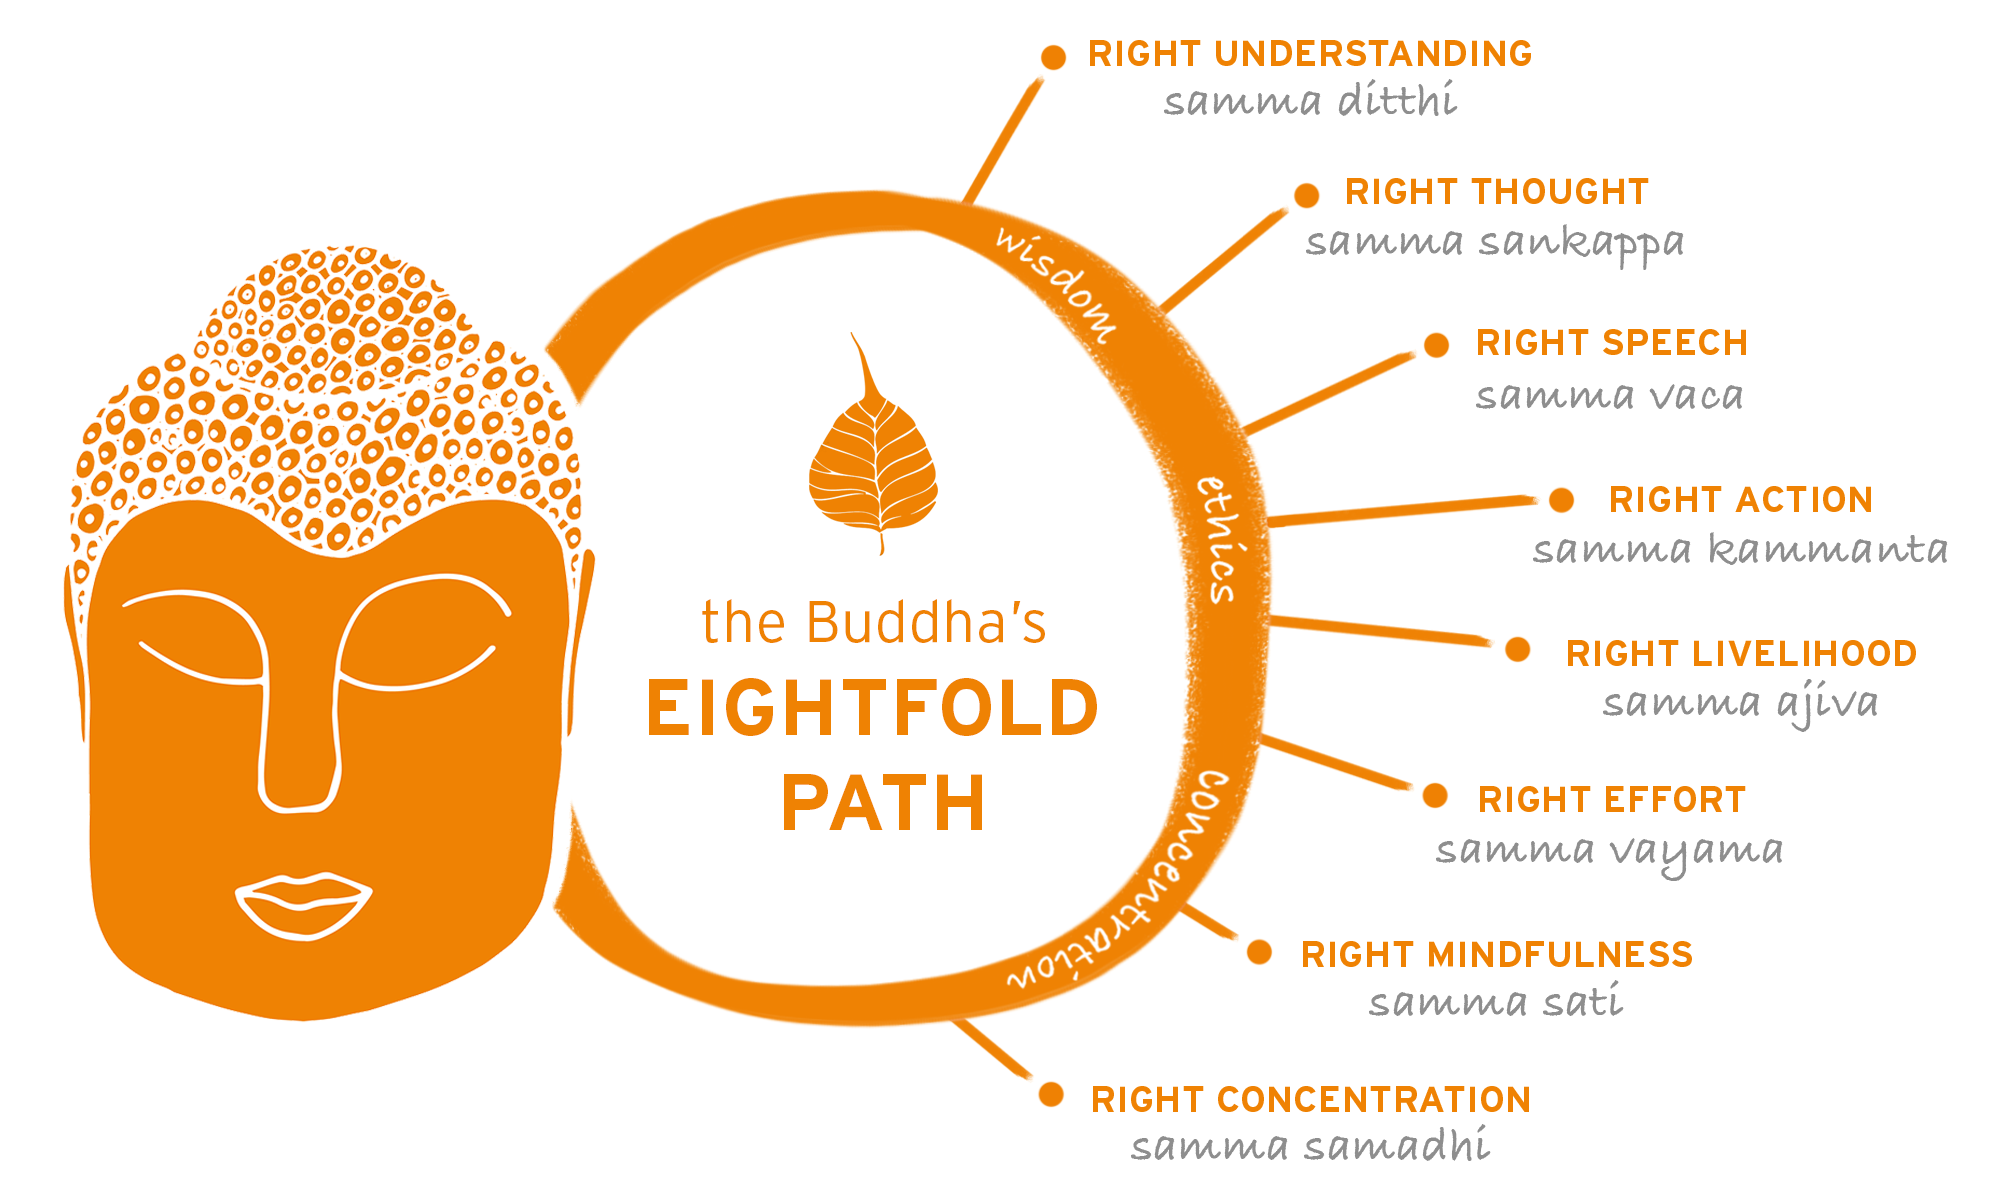 Mindfulness of the Buddha